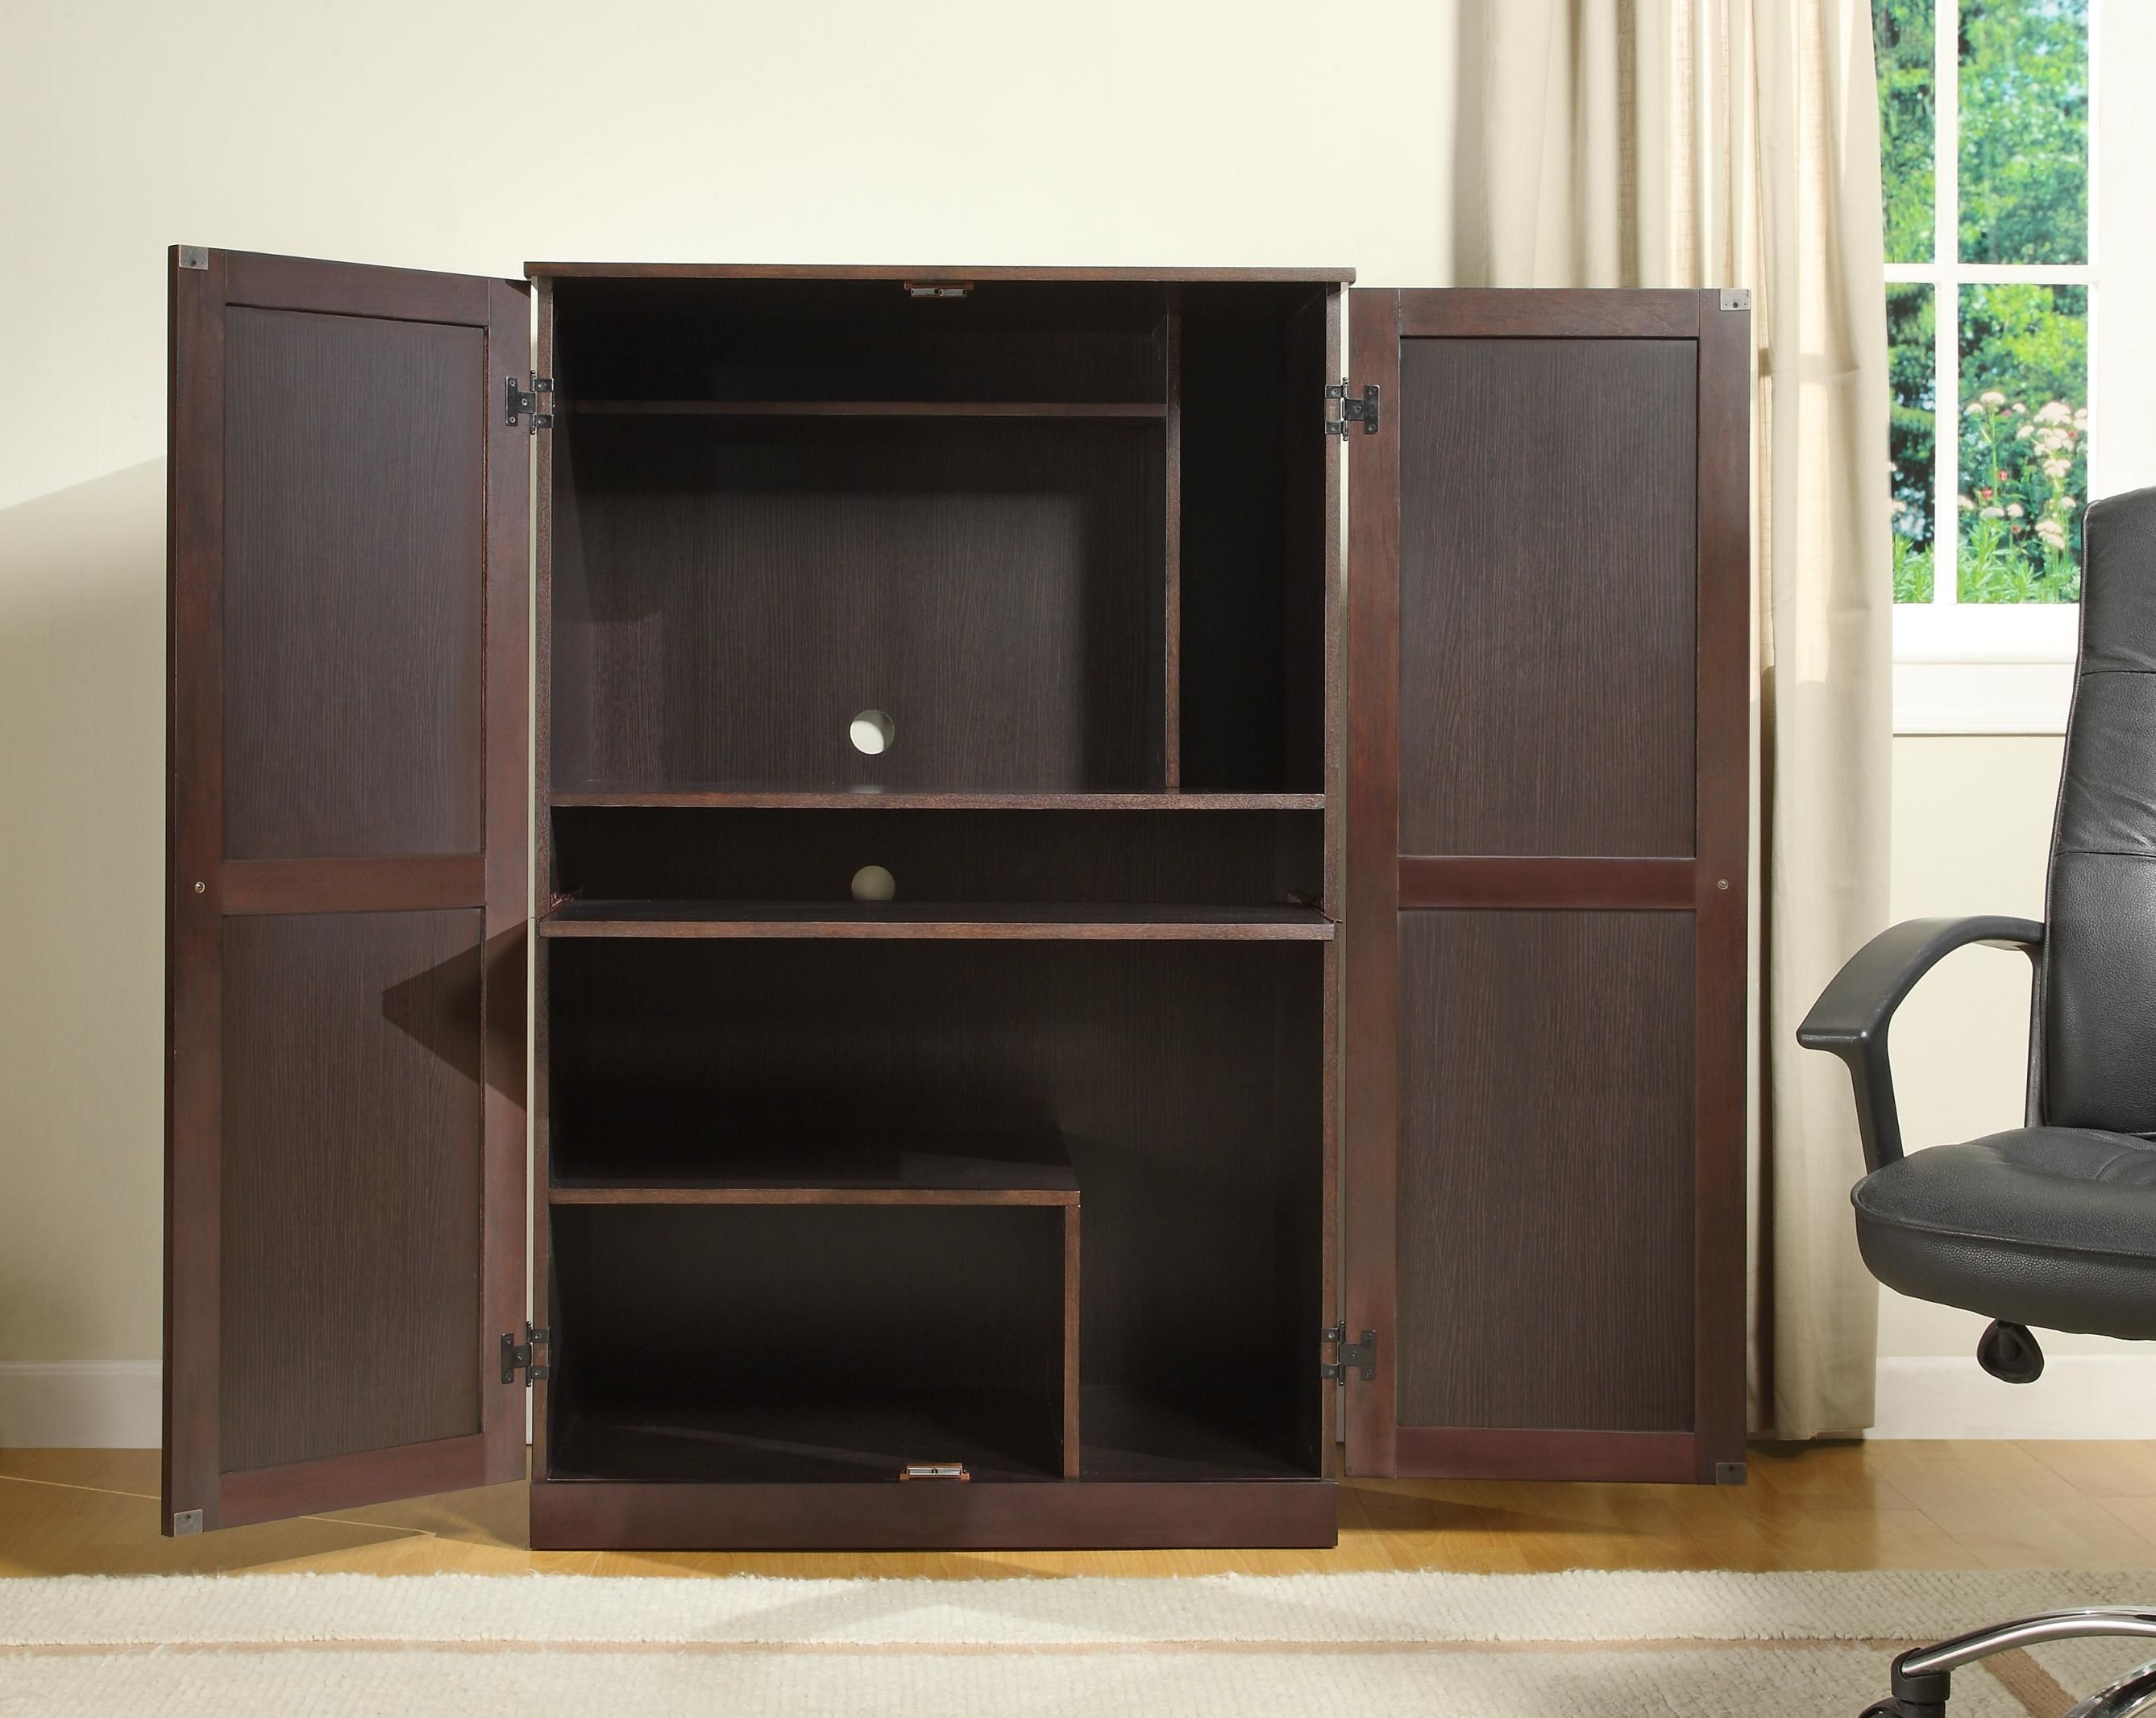 best small computer ideas of furniture uncategorized photo cabinets styles and marvelous the desk armoire image